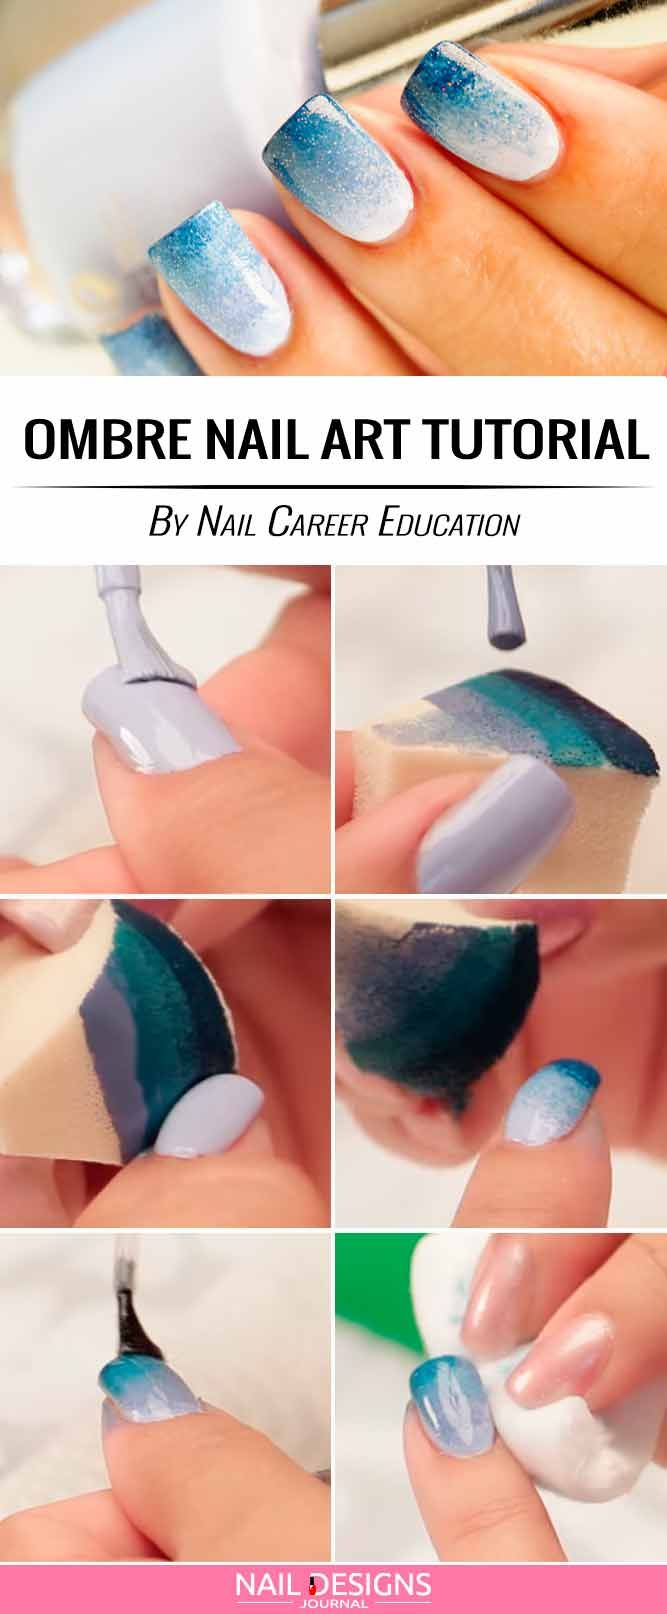 17 Super Easy Nail Designs Diy Tutorials Nail Tutorials